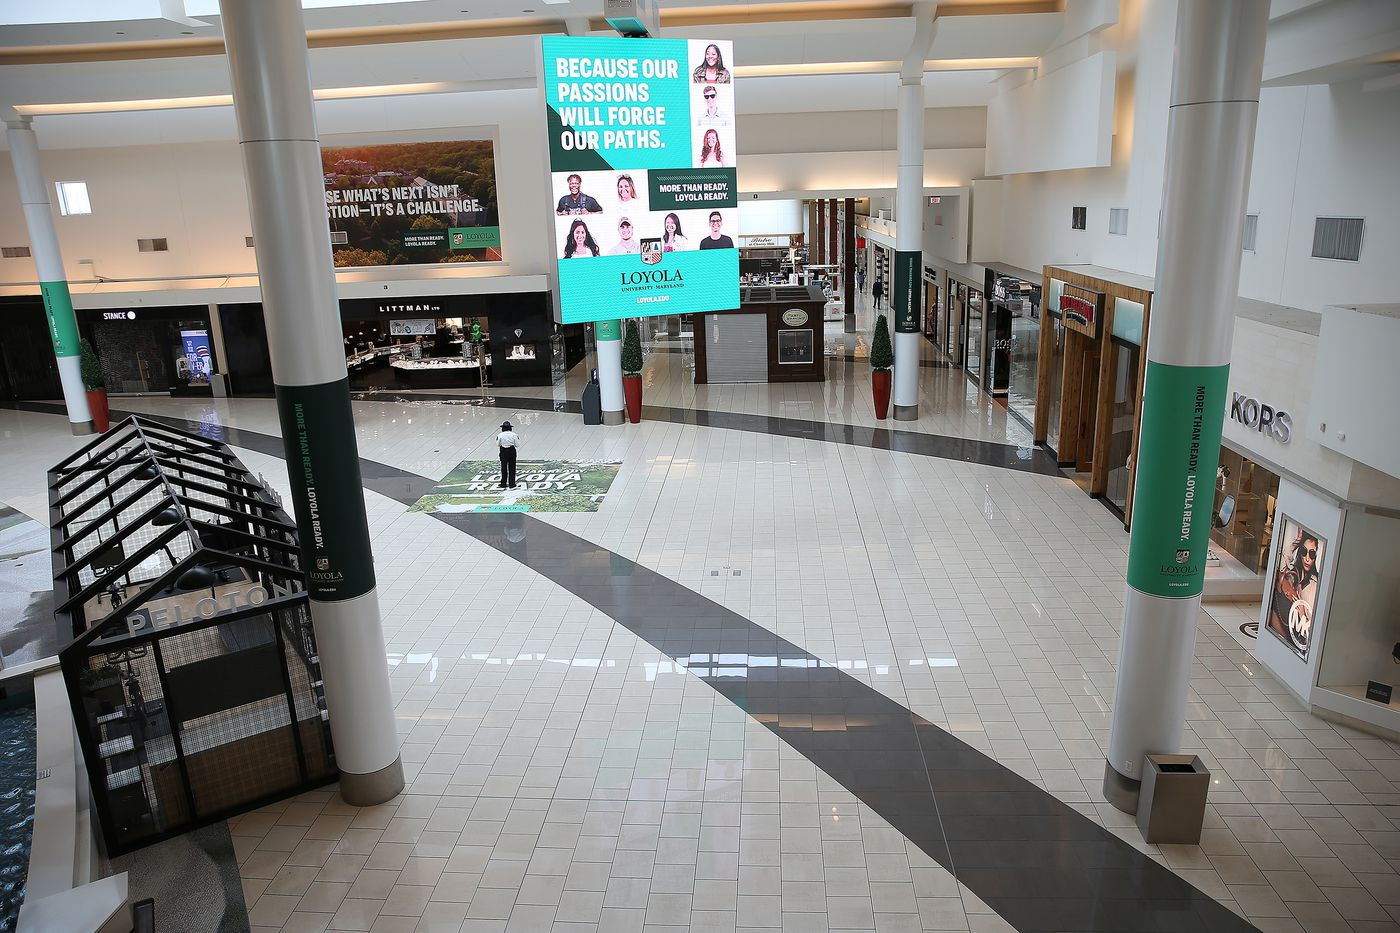 A nearly empty Cherry Hill Mall in Cherry Hill, NJ on March 17, 2020. Although the mall was still open many stores closed due to the coronavirus outbreak.